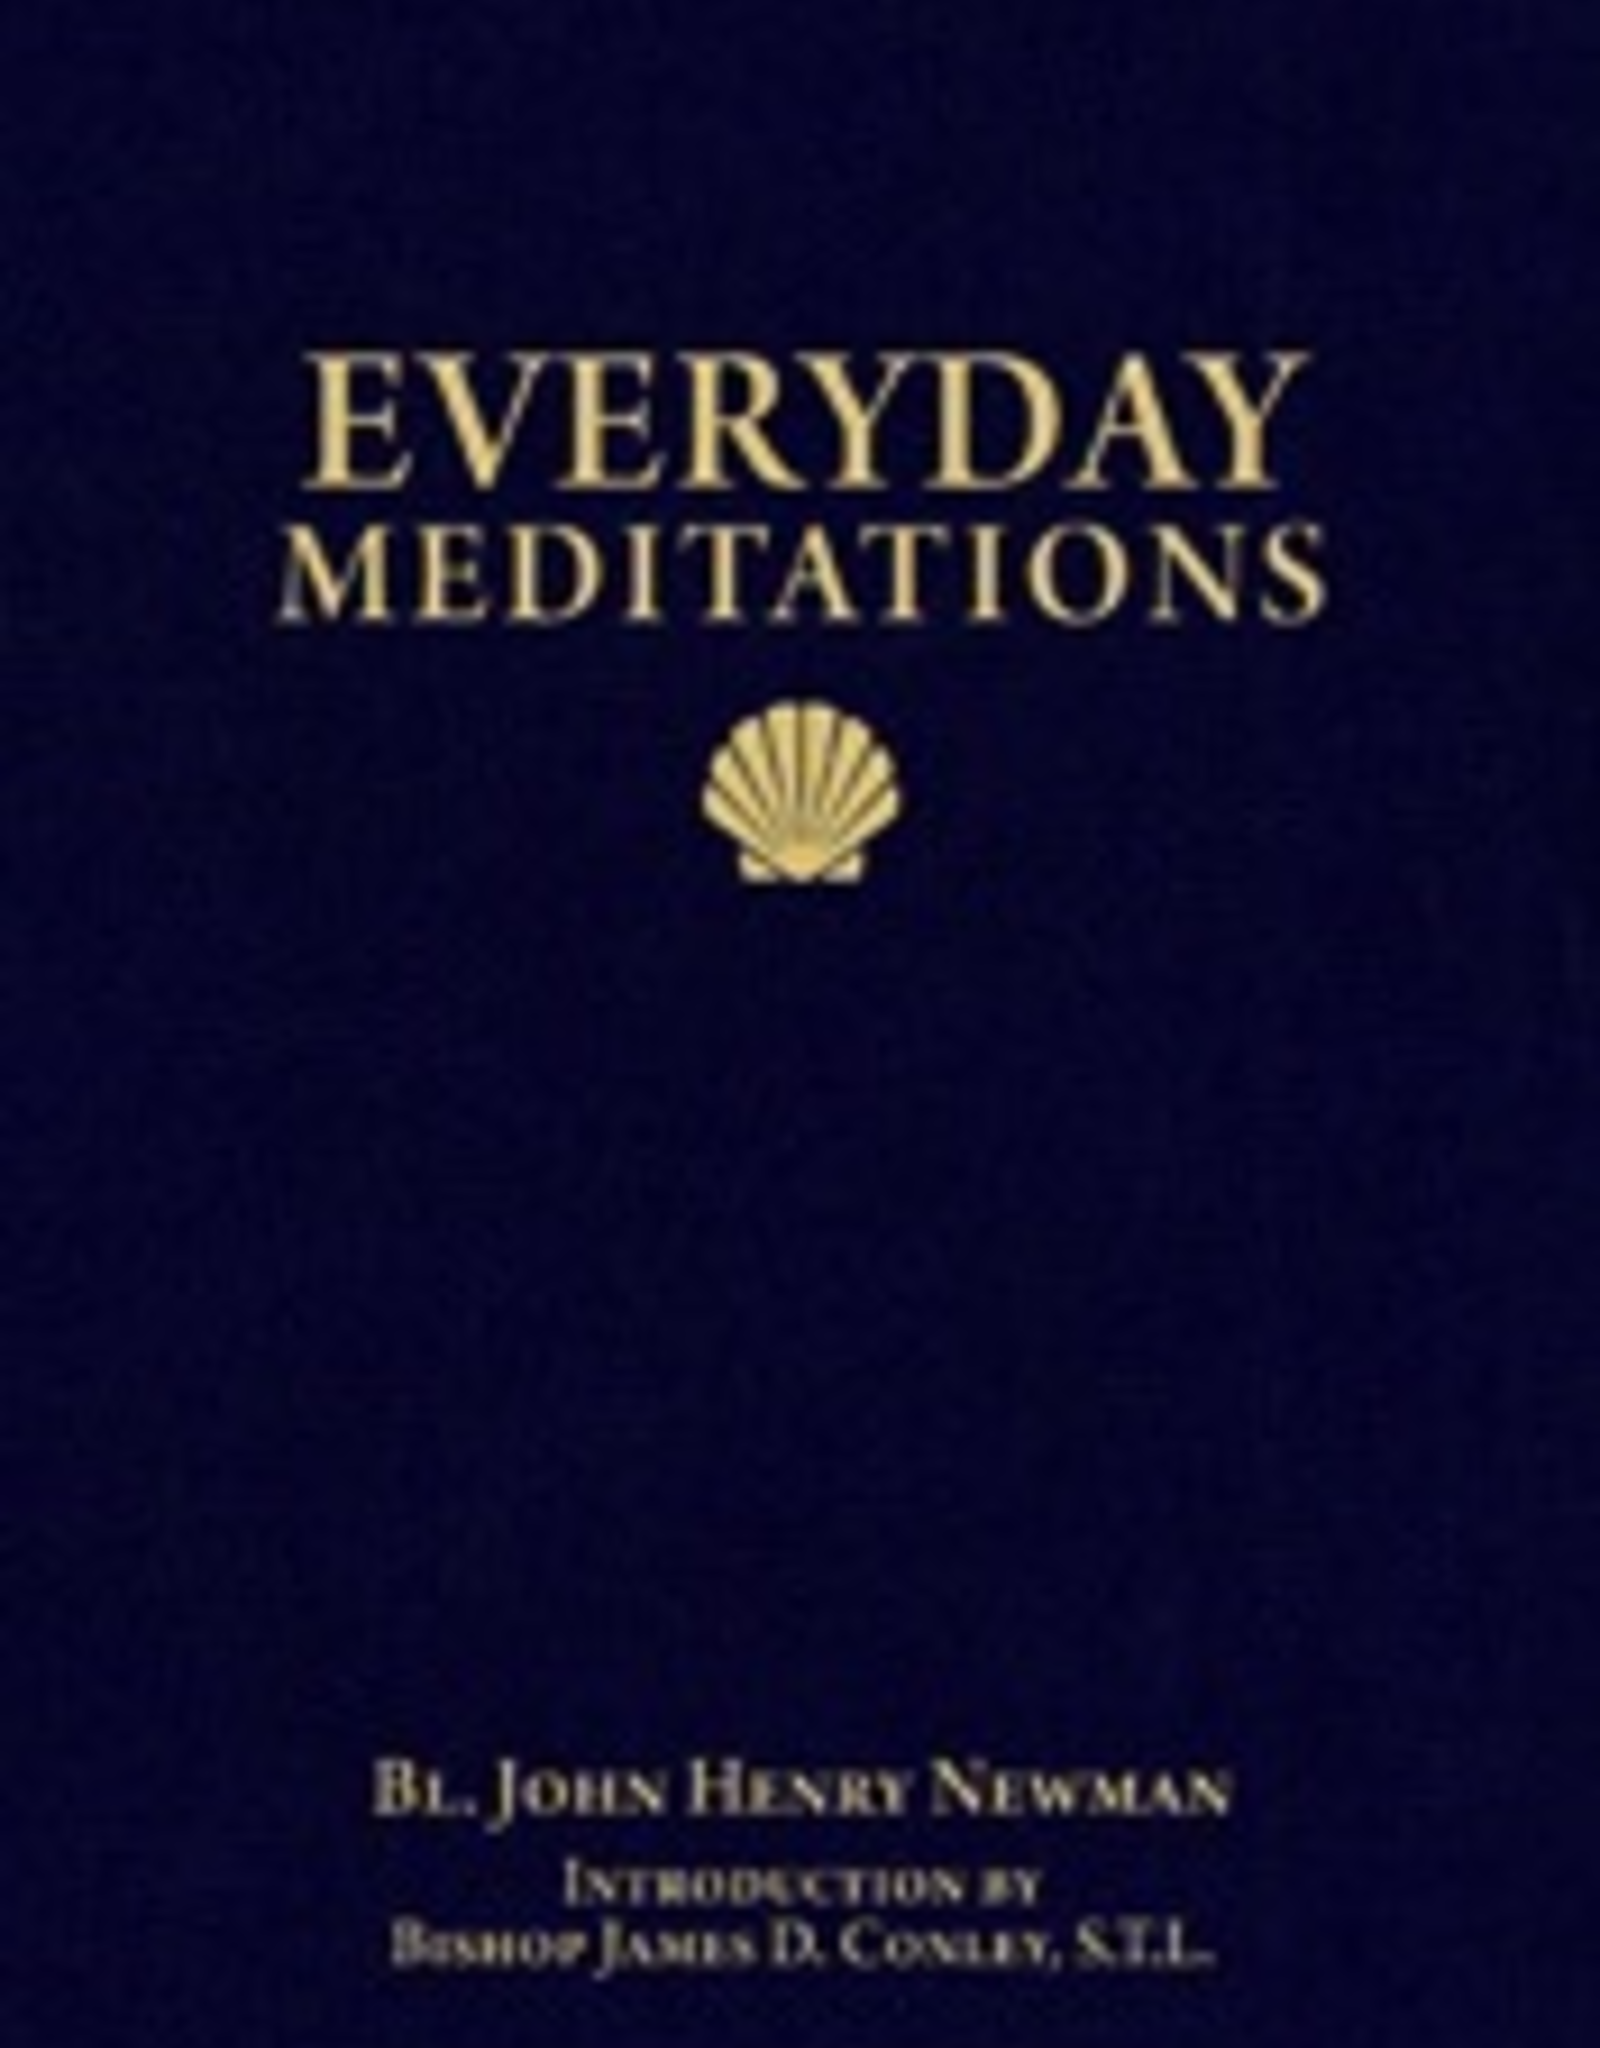 Sophia Institute Everyday Meditations, by John Henry Newman (introduction by Bishop James D. Conley) (paperback)